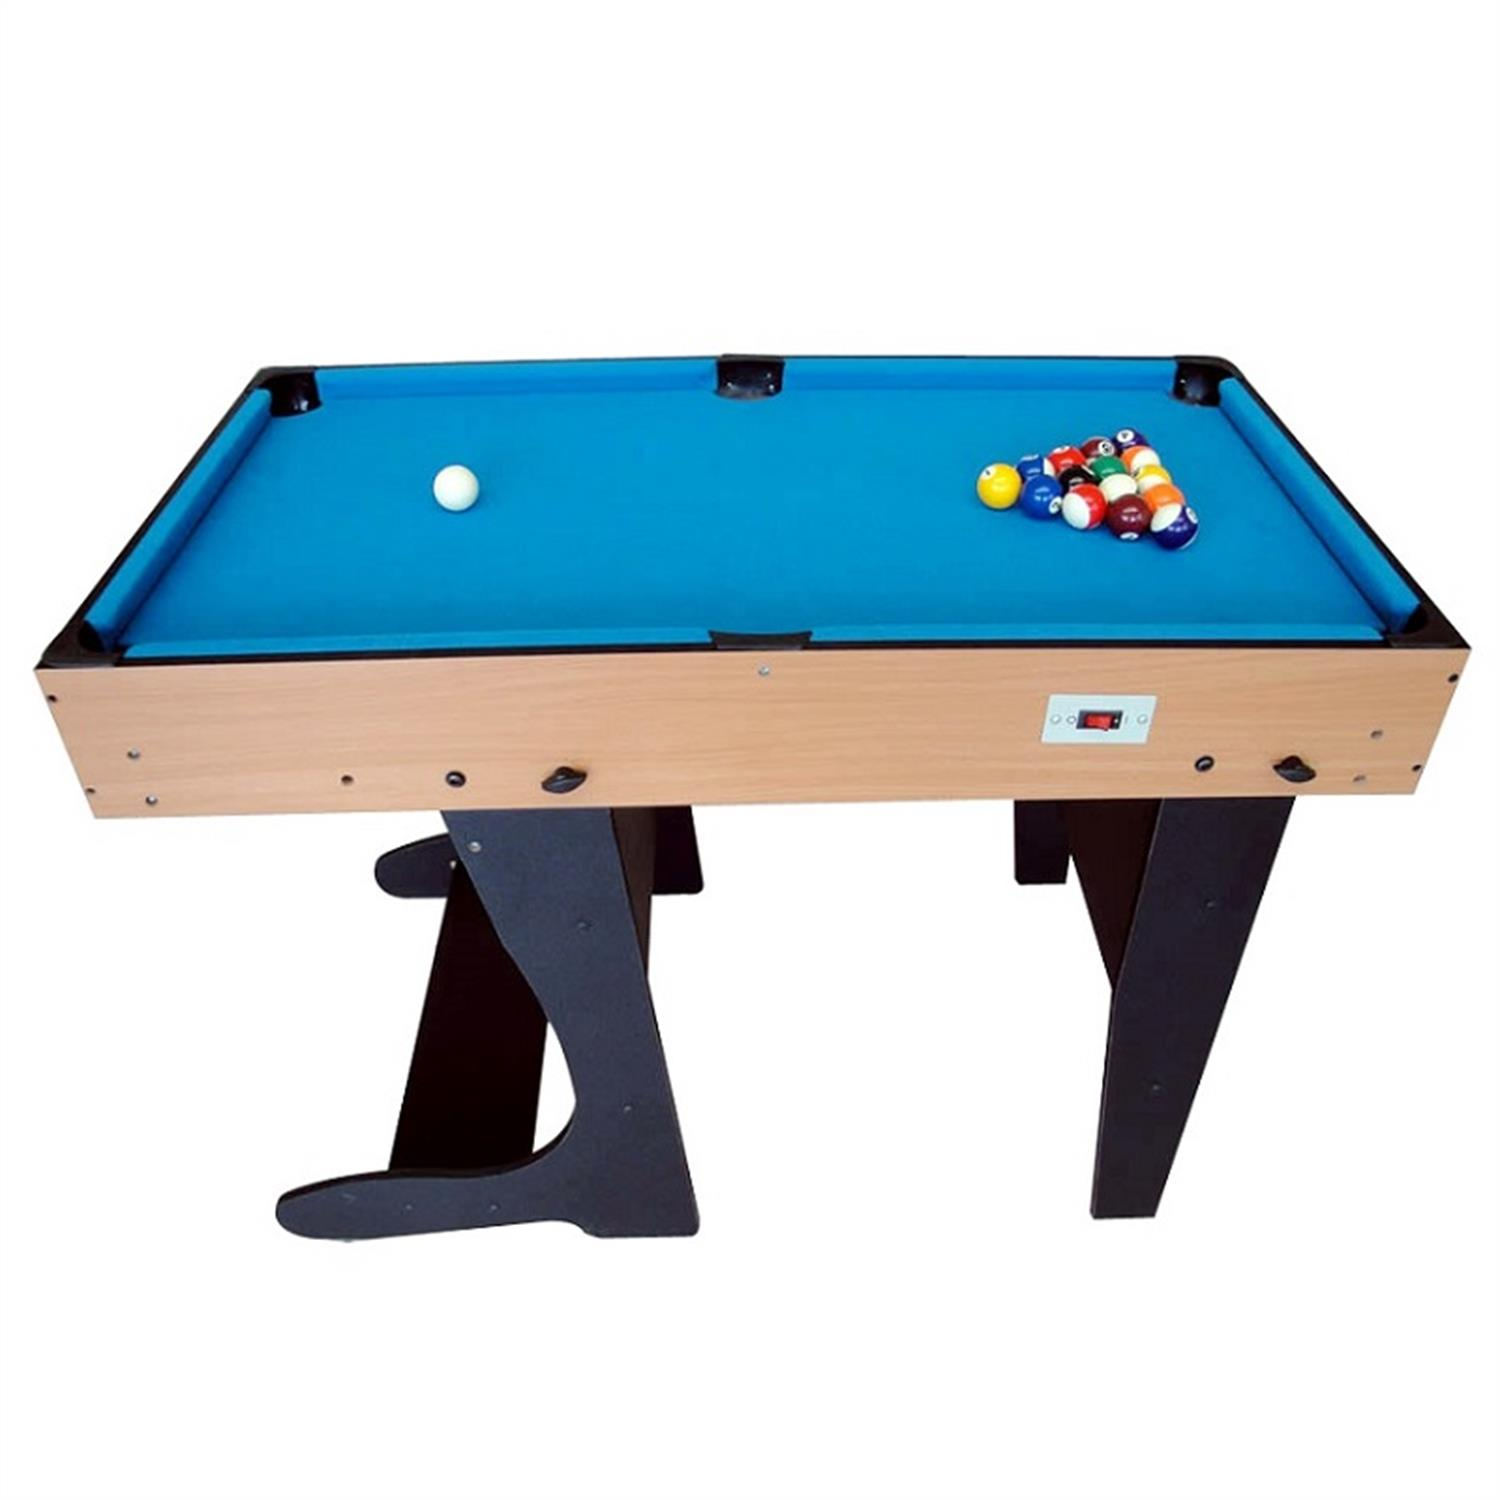 Riley 4 in 1 game table foldable 12 games air hockey for 10 in 1 pool table